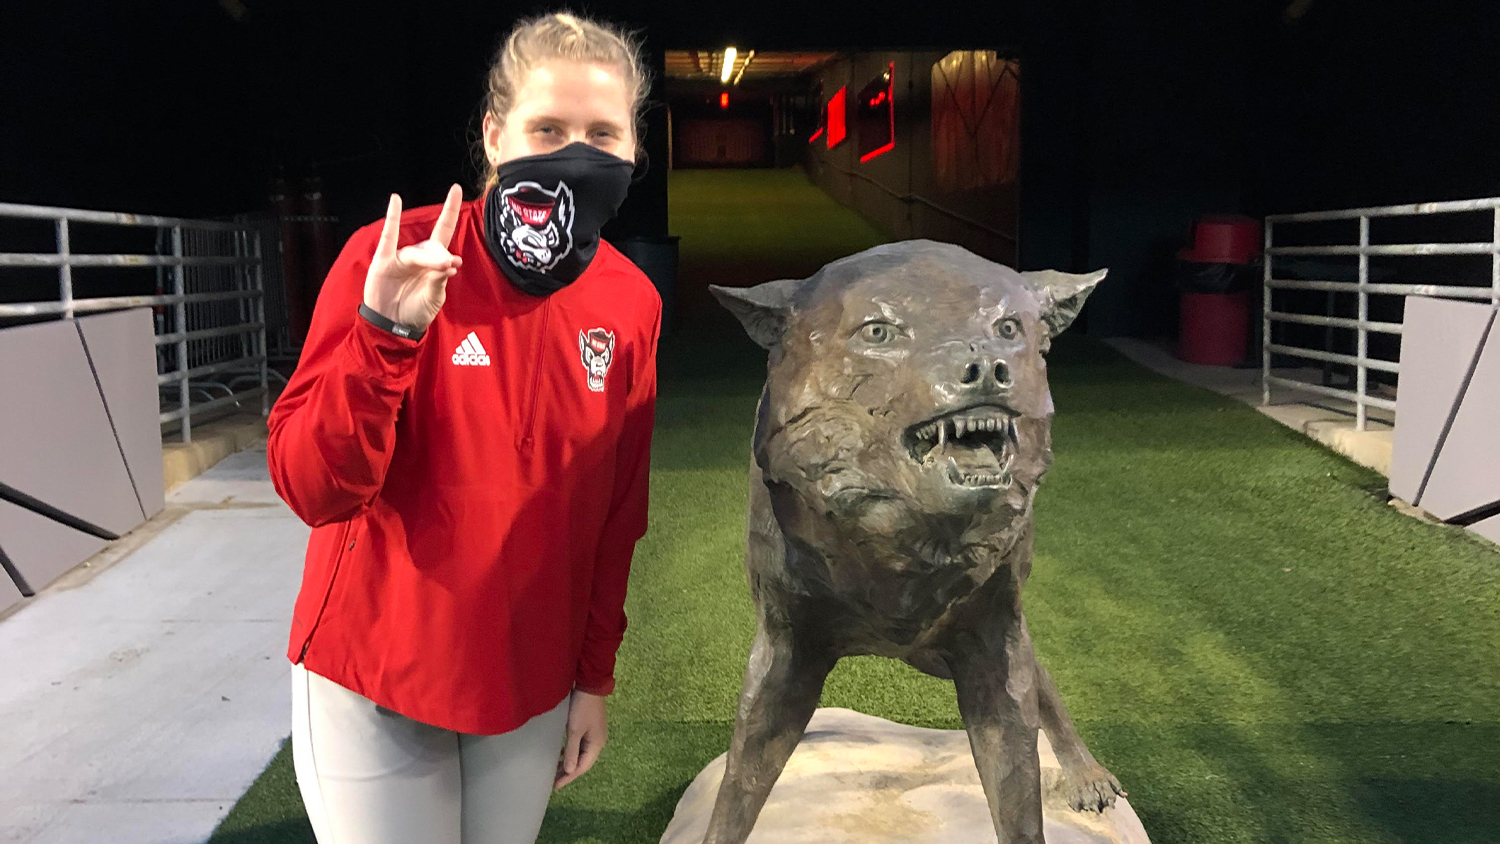 Crista Bain wearing a red jacket and a black NC State face mask makes a wolfie sign next to the wolf statue in Carter Finley Stadium